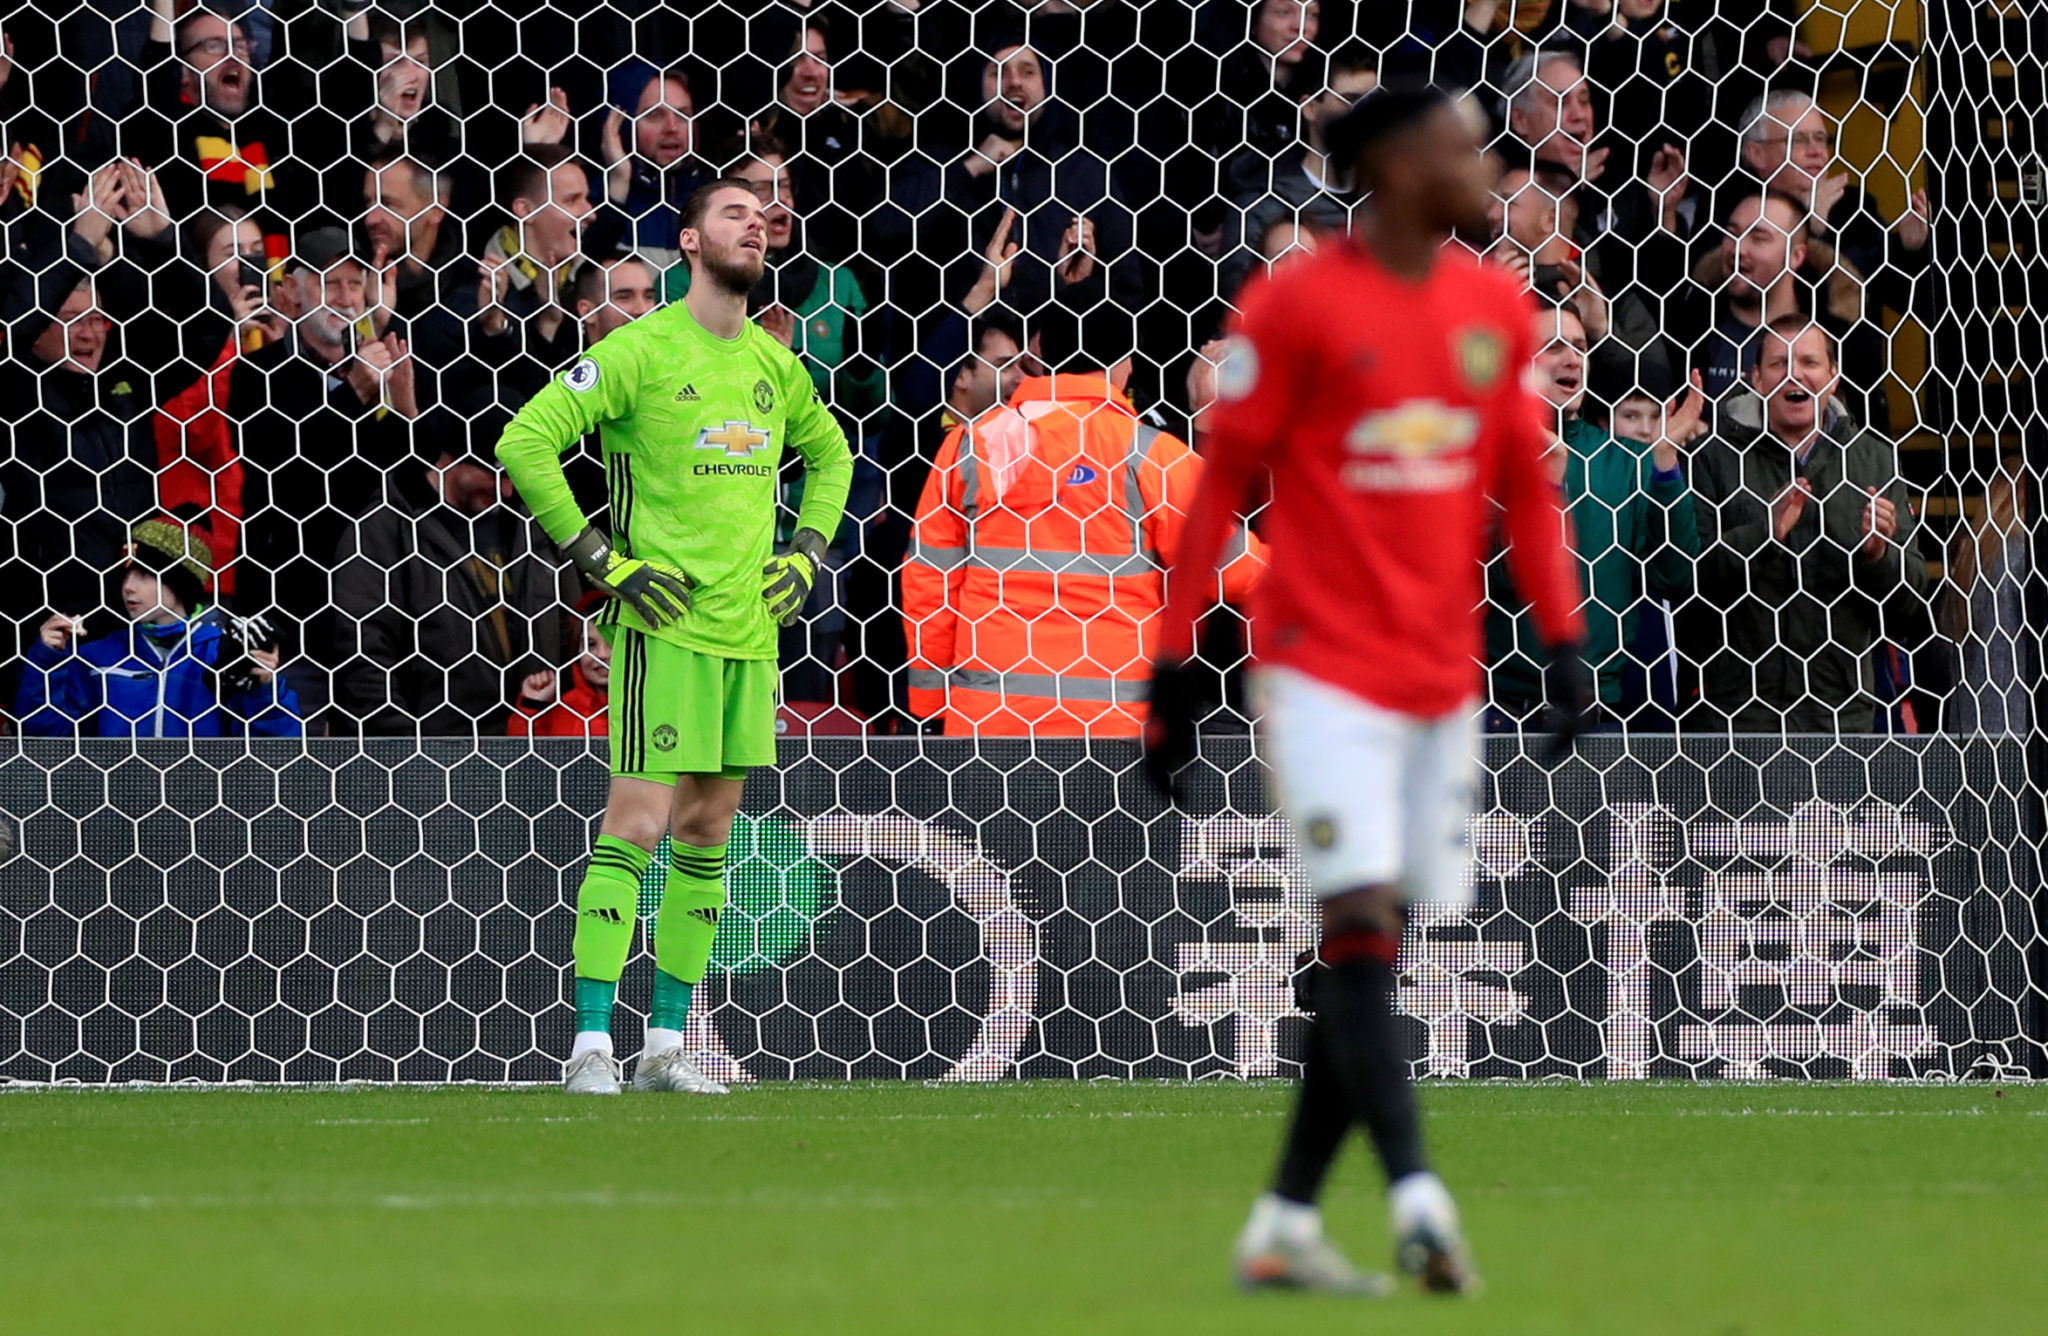 David de Gea disappointment after conceding a goal.